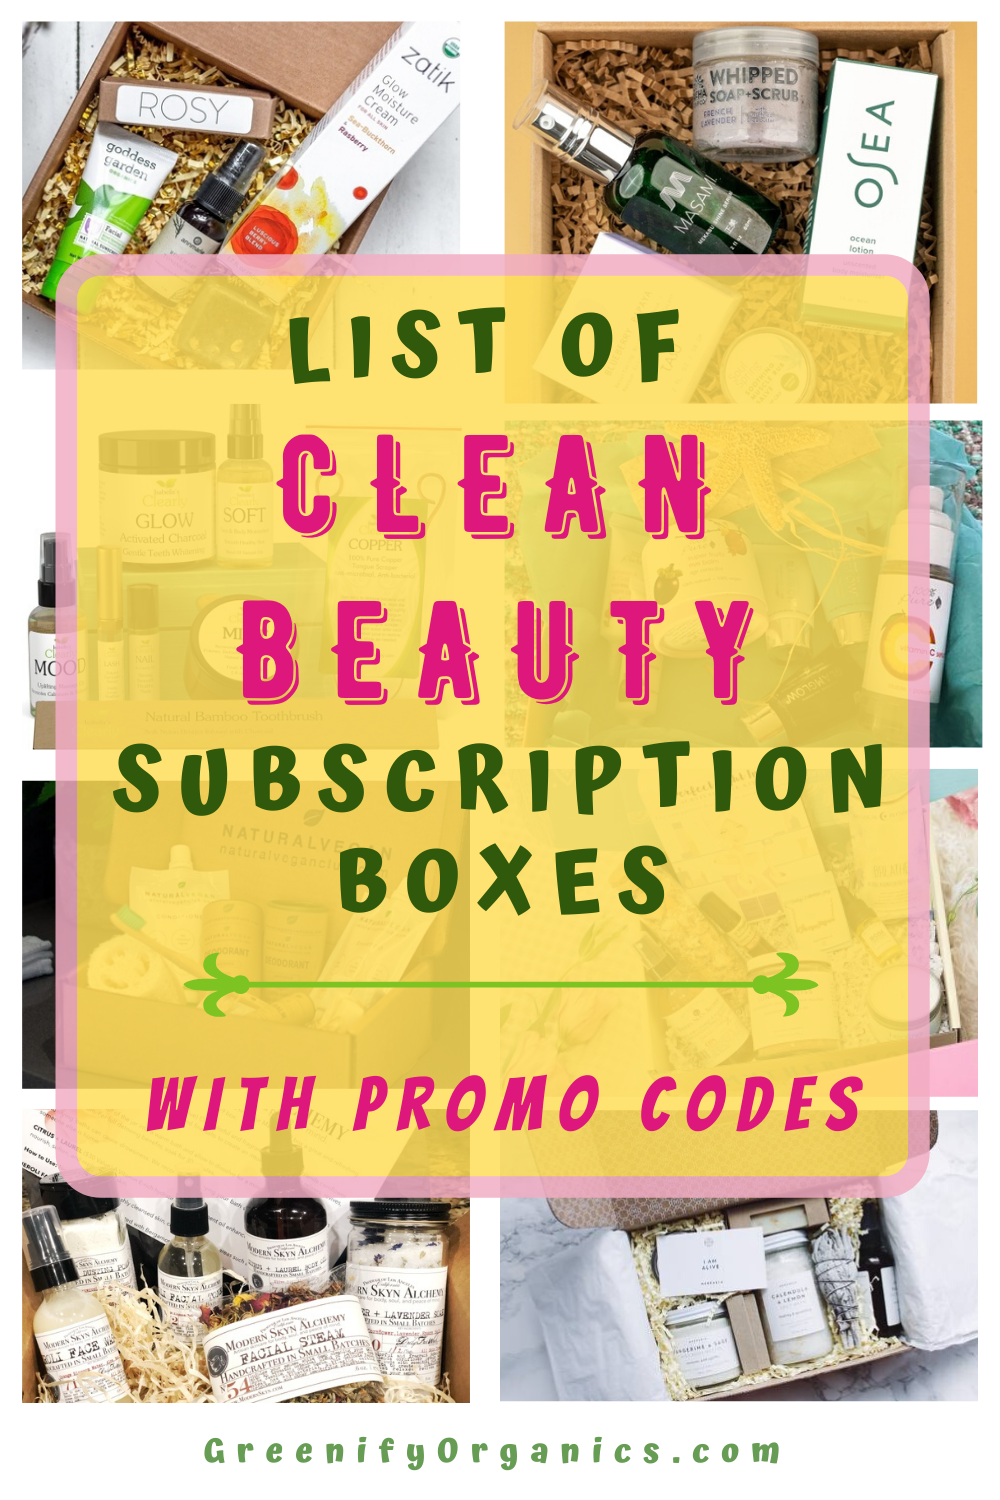 Best Clean Beauty Subscription Boxes With Promo Codes! in